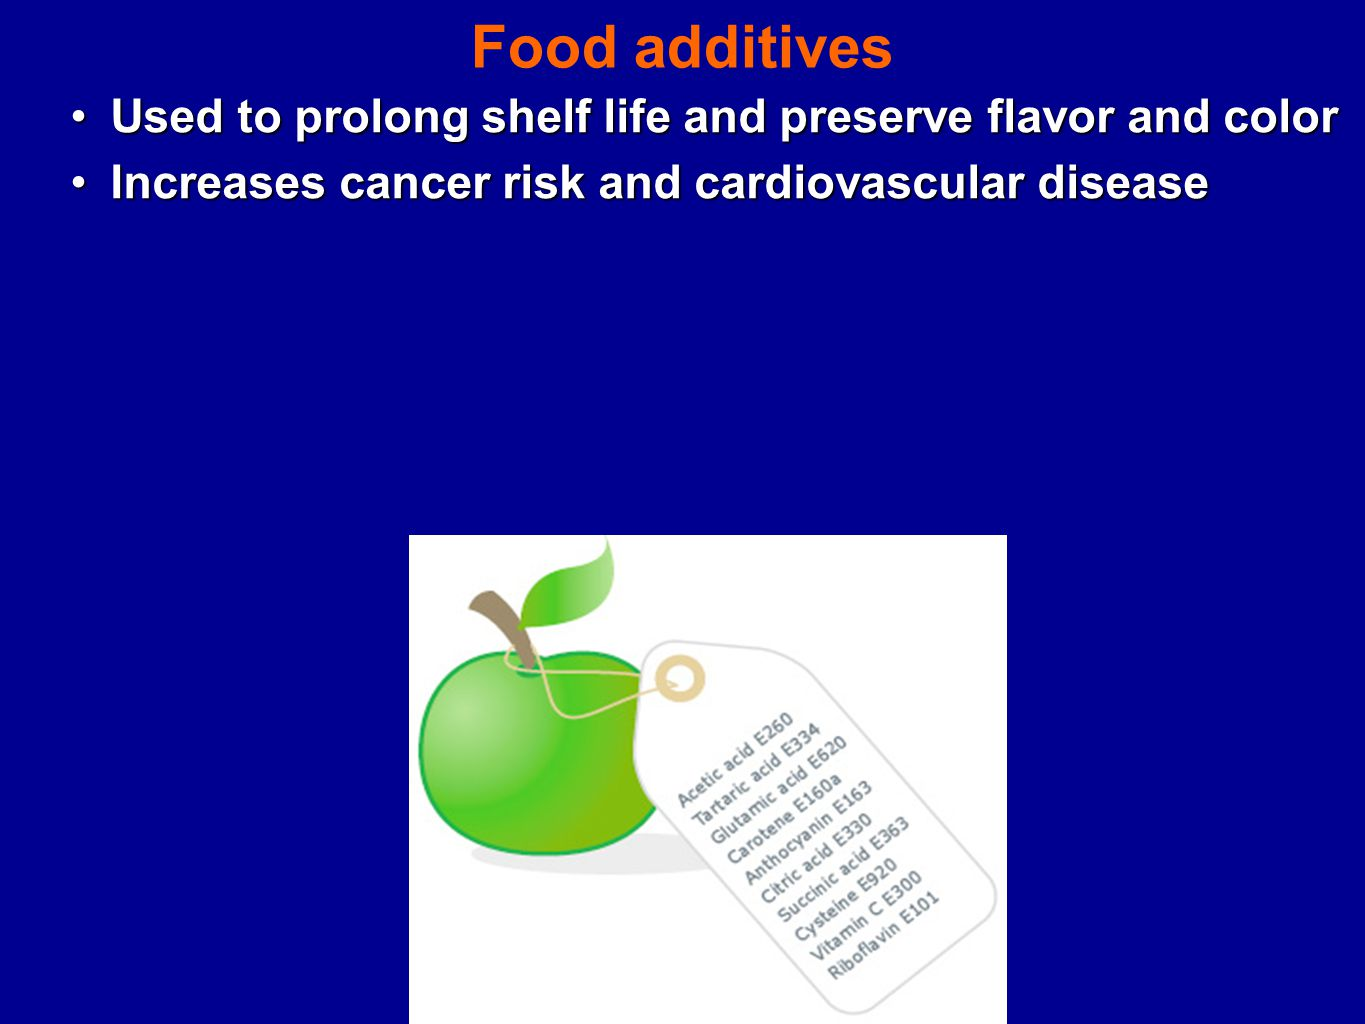 Food additives Used to prolong shelf life and preserve flavor and colorUsed to prolong shelf life and preserve flavor and color Increases cancer risk and cardiovascular diseaseIncreases cancer risk and cardiovascular disease